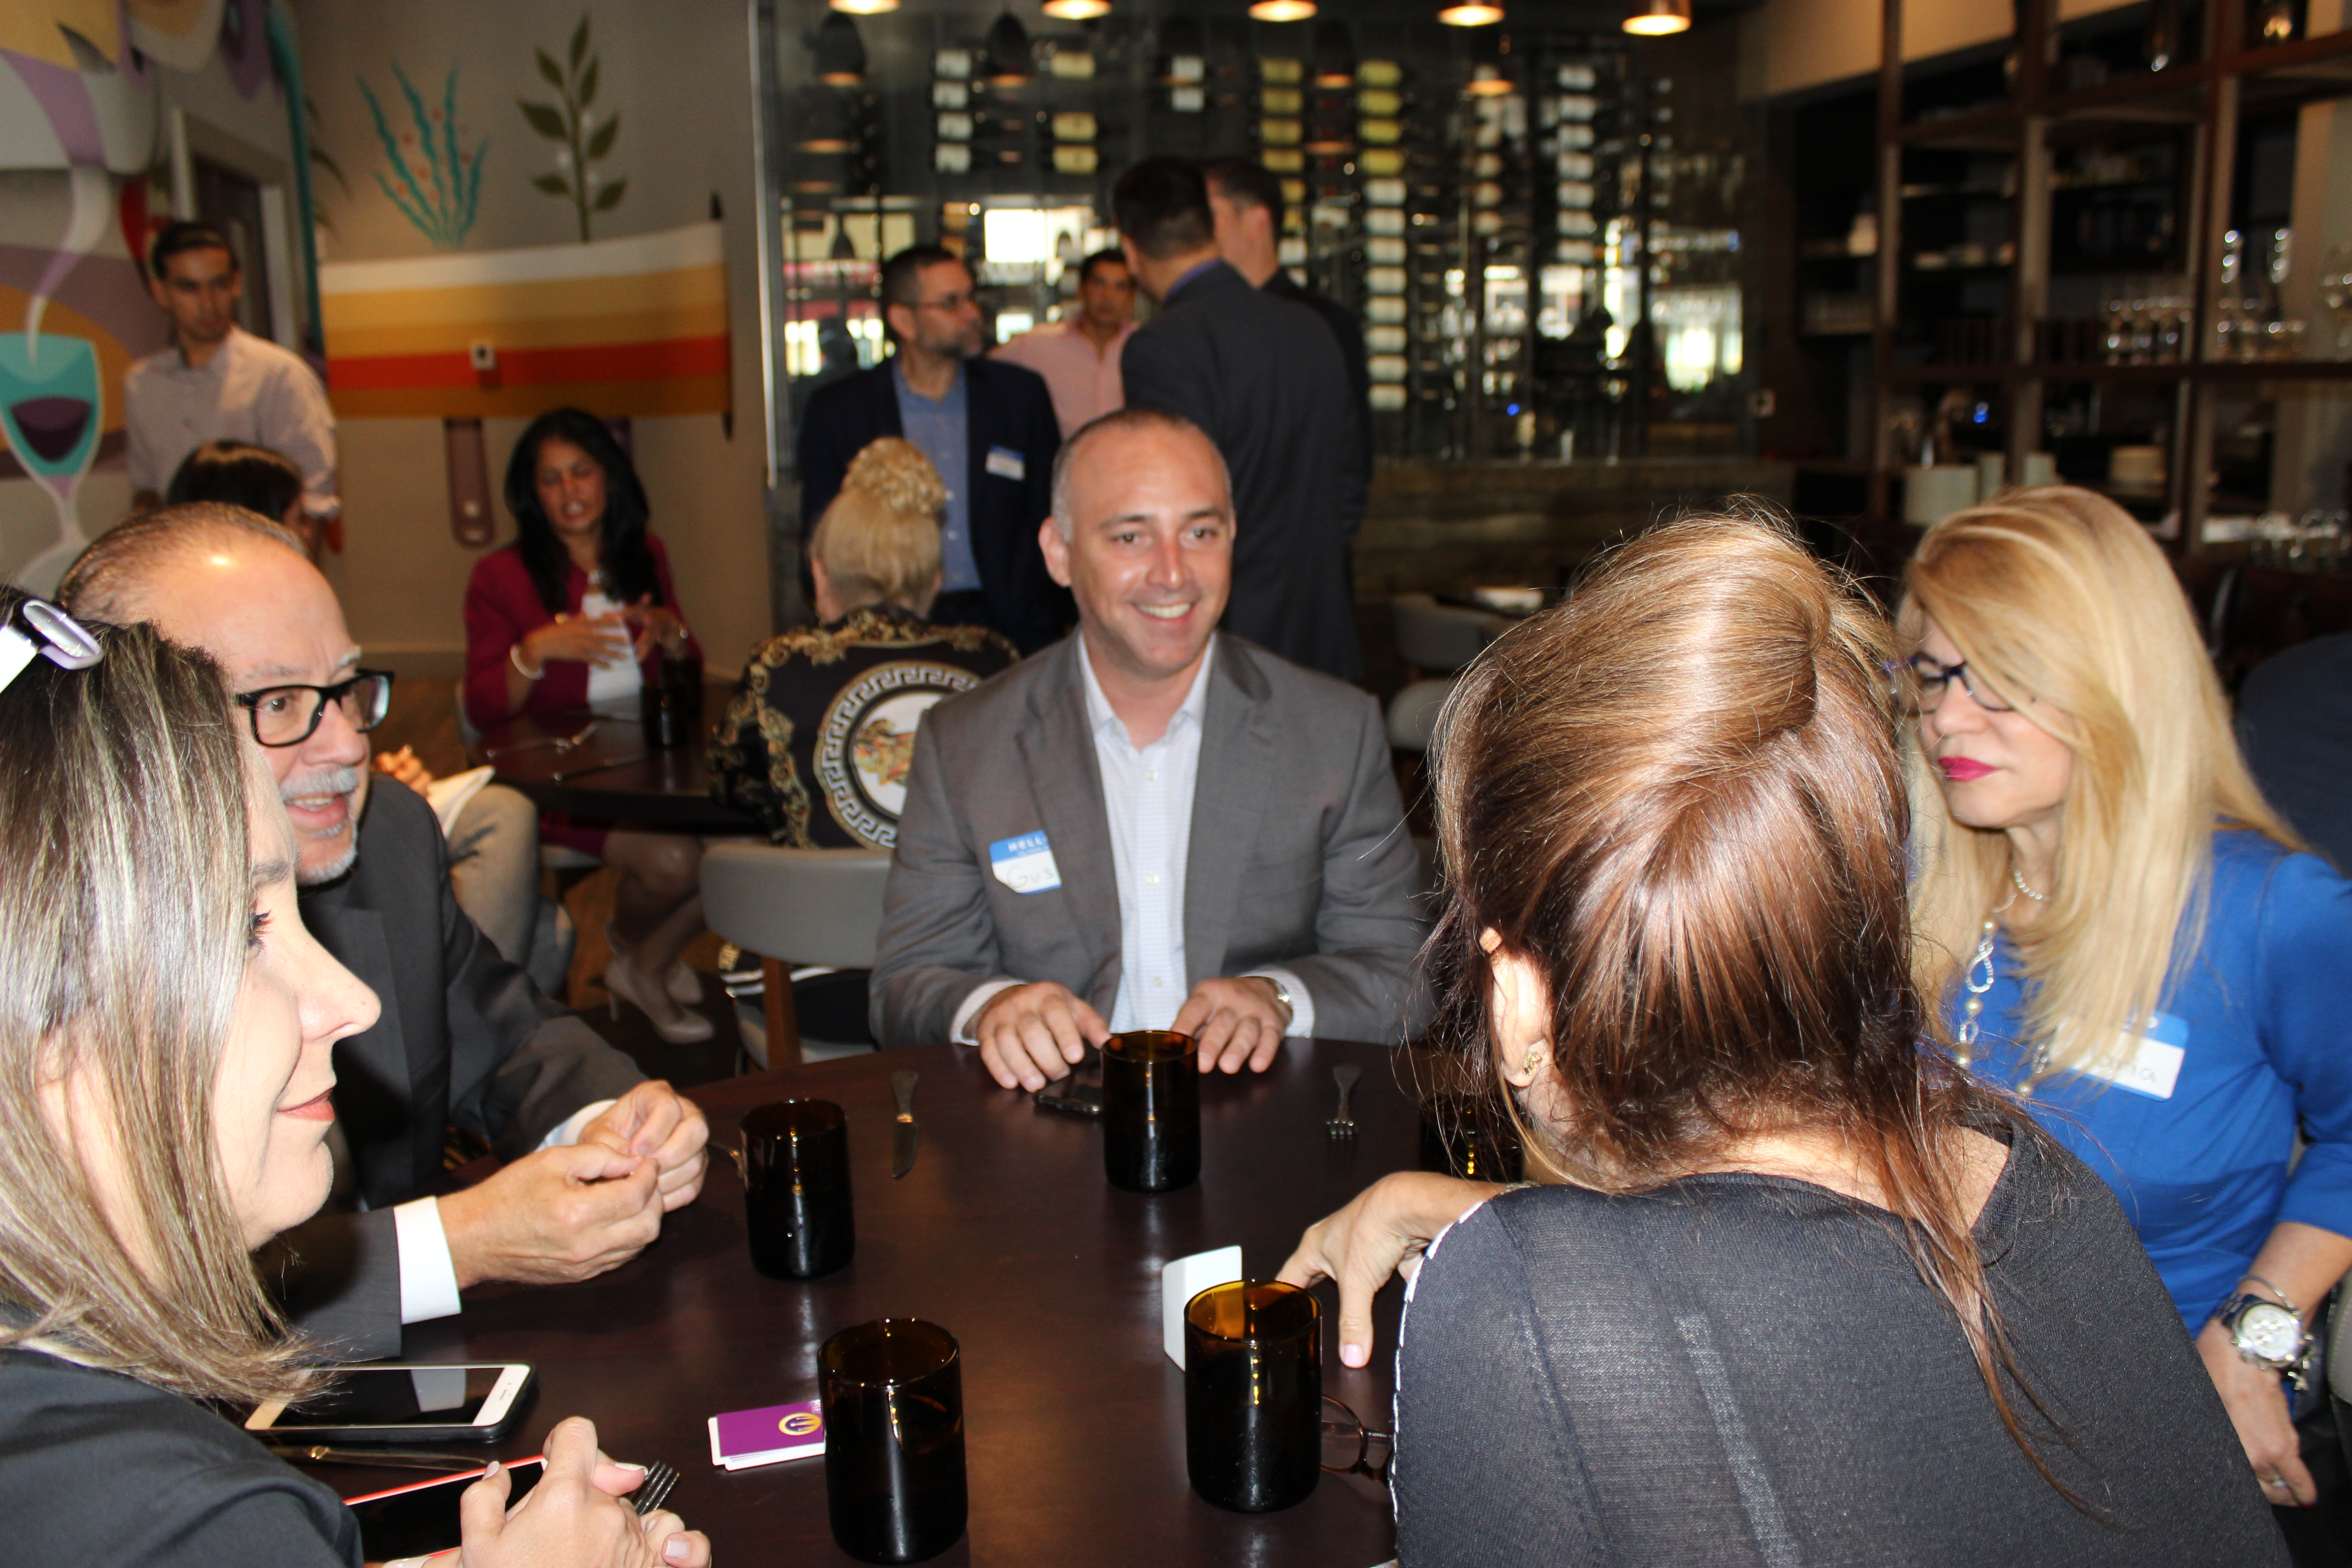 Group Networking at Gusto Ristobar hosted by the Doral Chamber of Commerce.